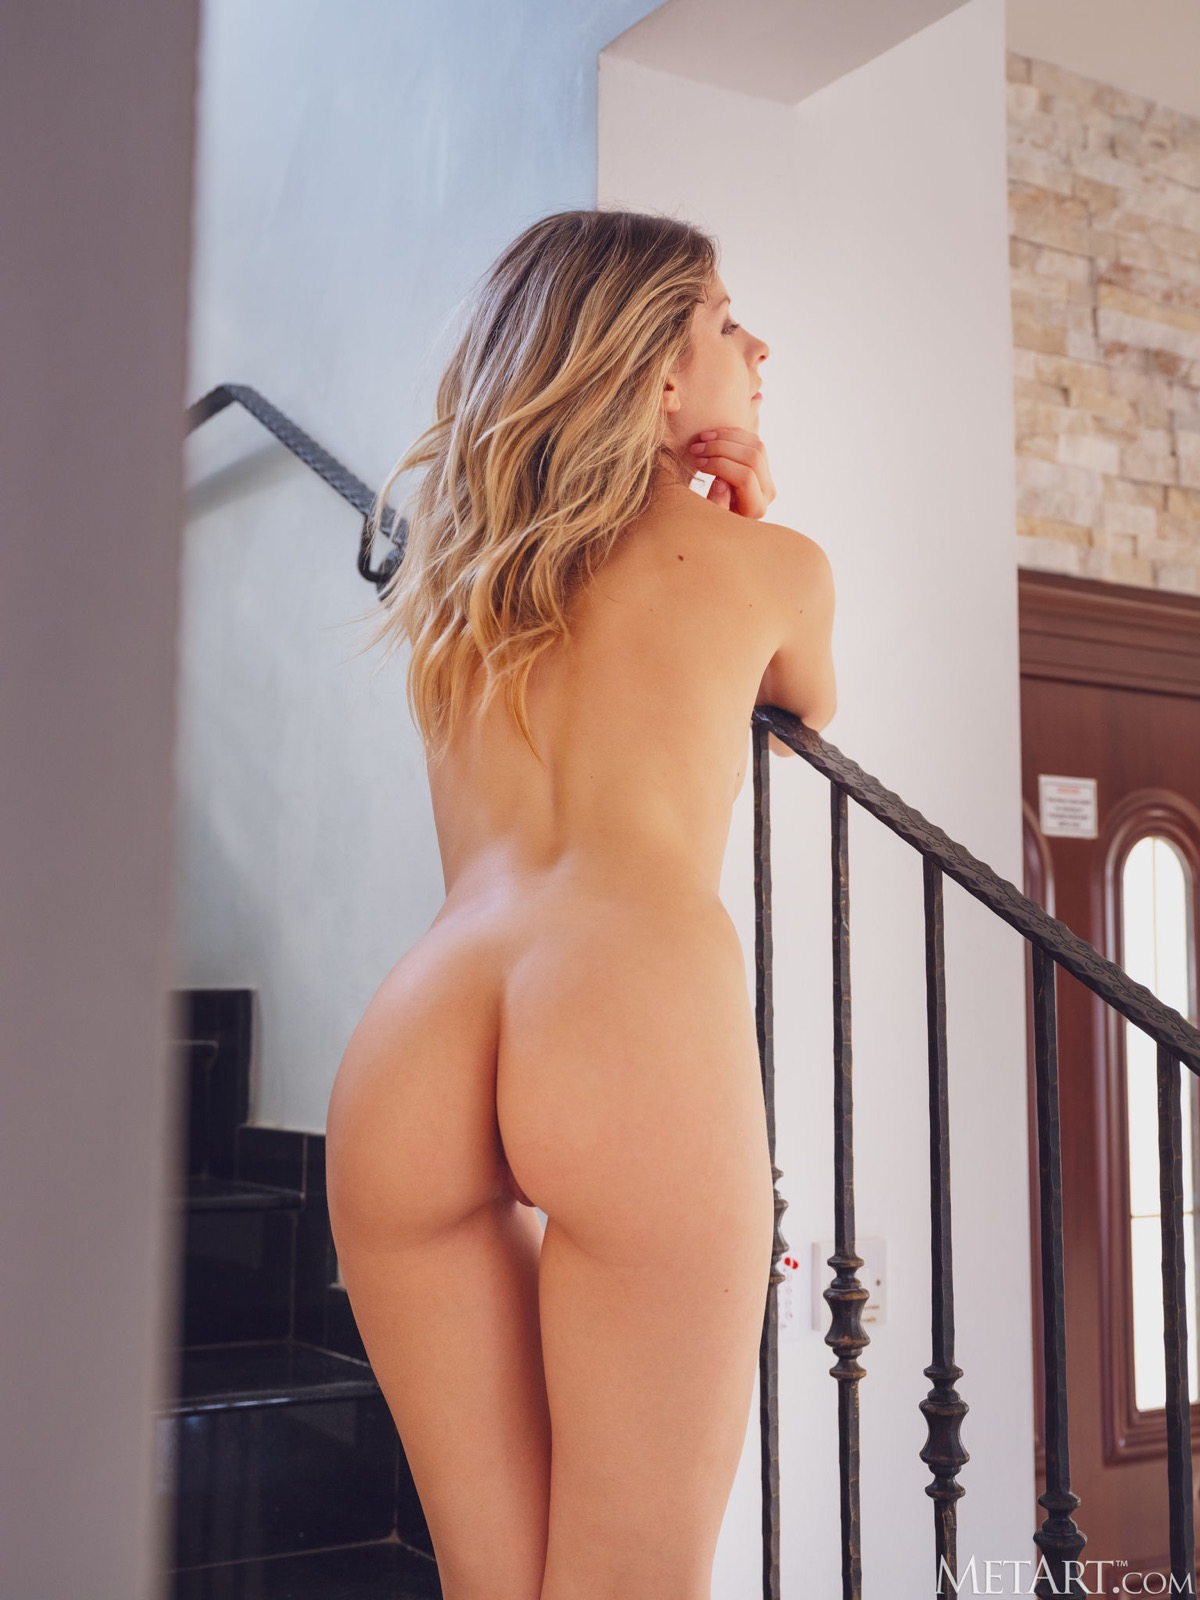 young girls - Sexy Girl - rebcca volpetti - nude 10302